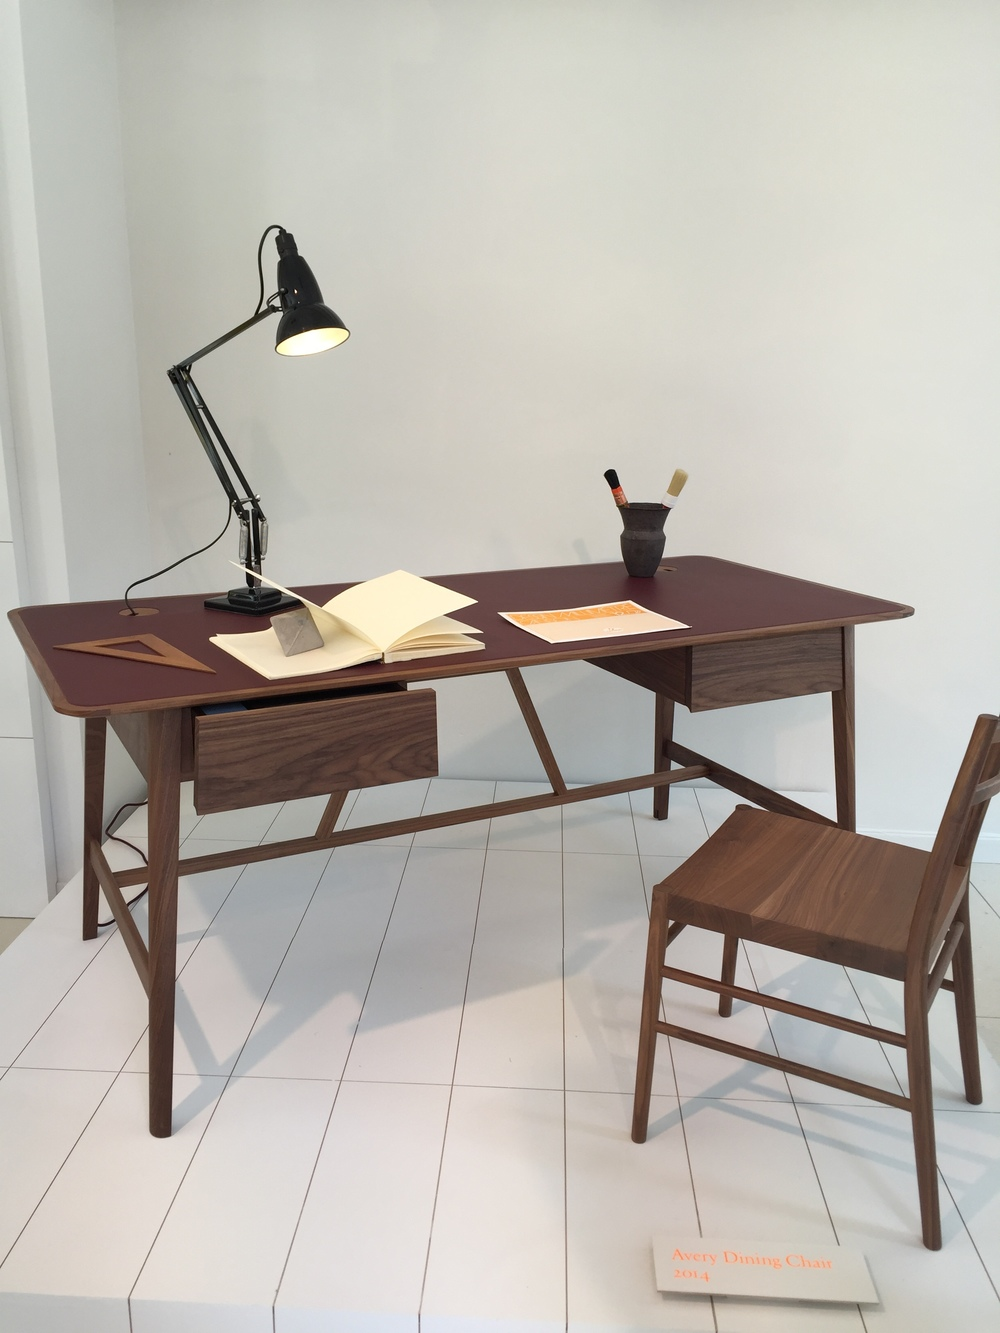 Beautiful desk by British designers Pinch. Incidentally, also a husband and wife duo Russell Pinch and Oona Bannon.